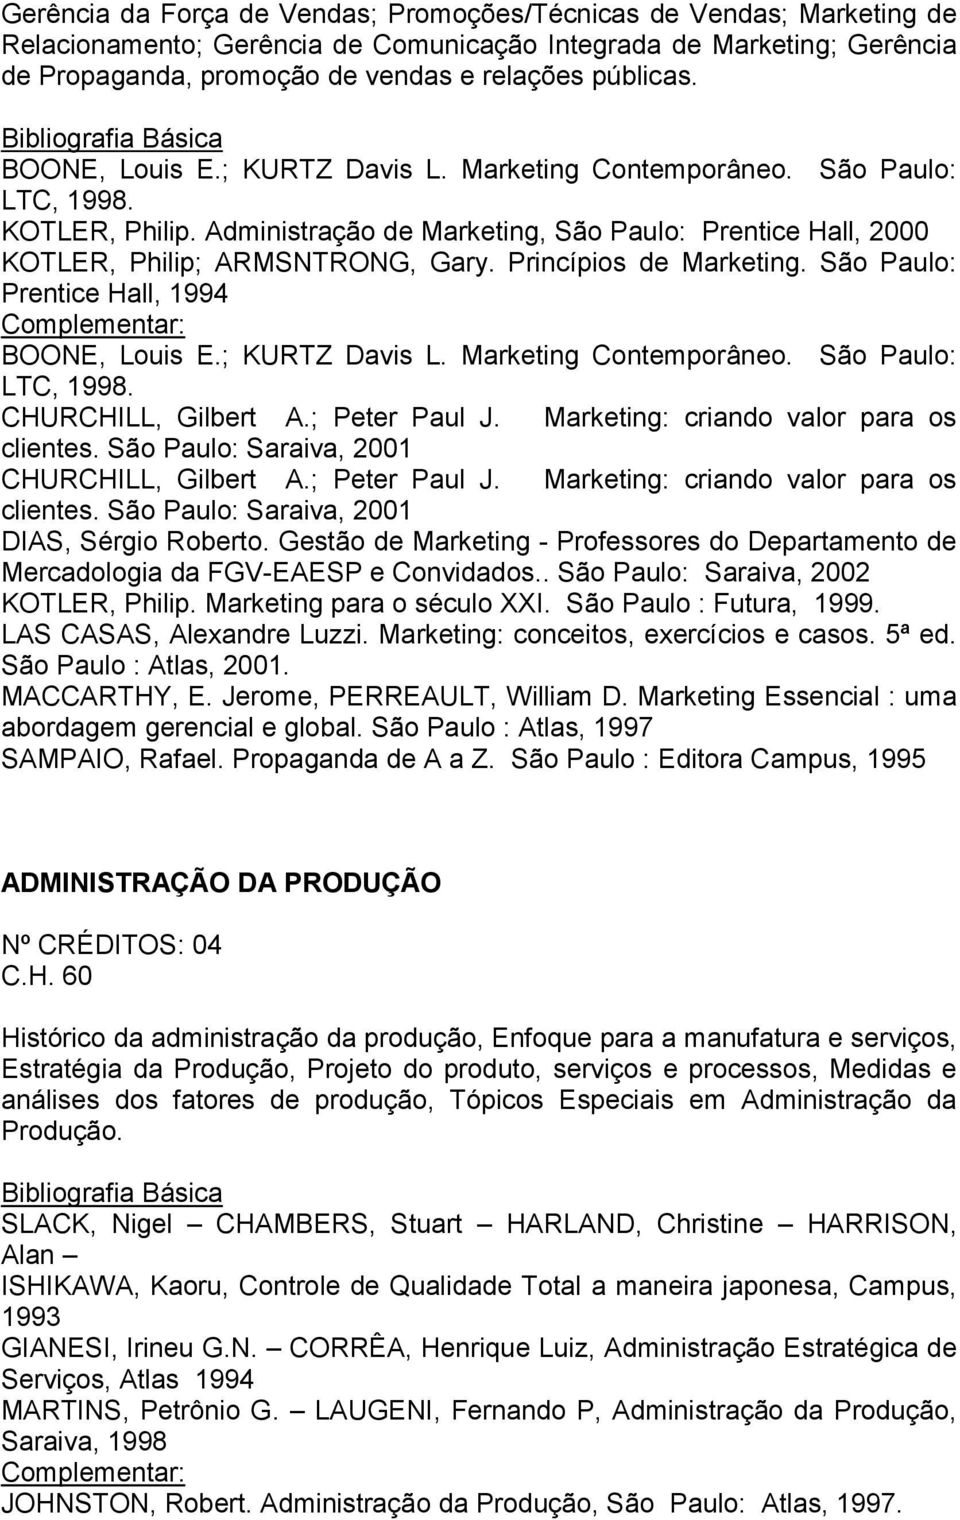 Princípios de Marketing. São Paulo: Prentice Hall, 1994 BOONE, Louis E.; KURTZ Davis L. Marketing Contemporâneo. São Paulo: LTC, 1998. CHURCHILL, Gilbert A.; Peter Paul J.